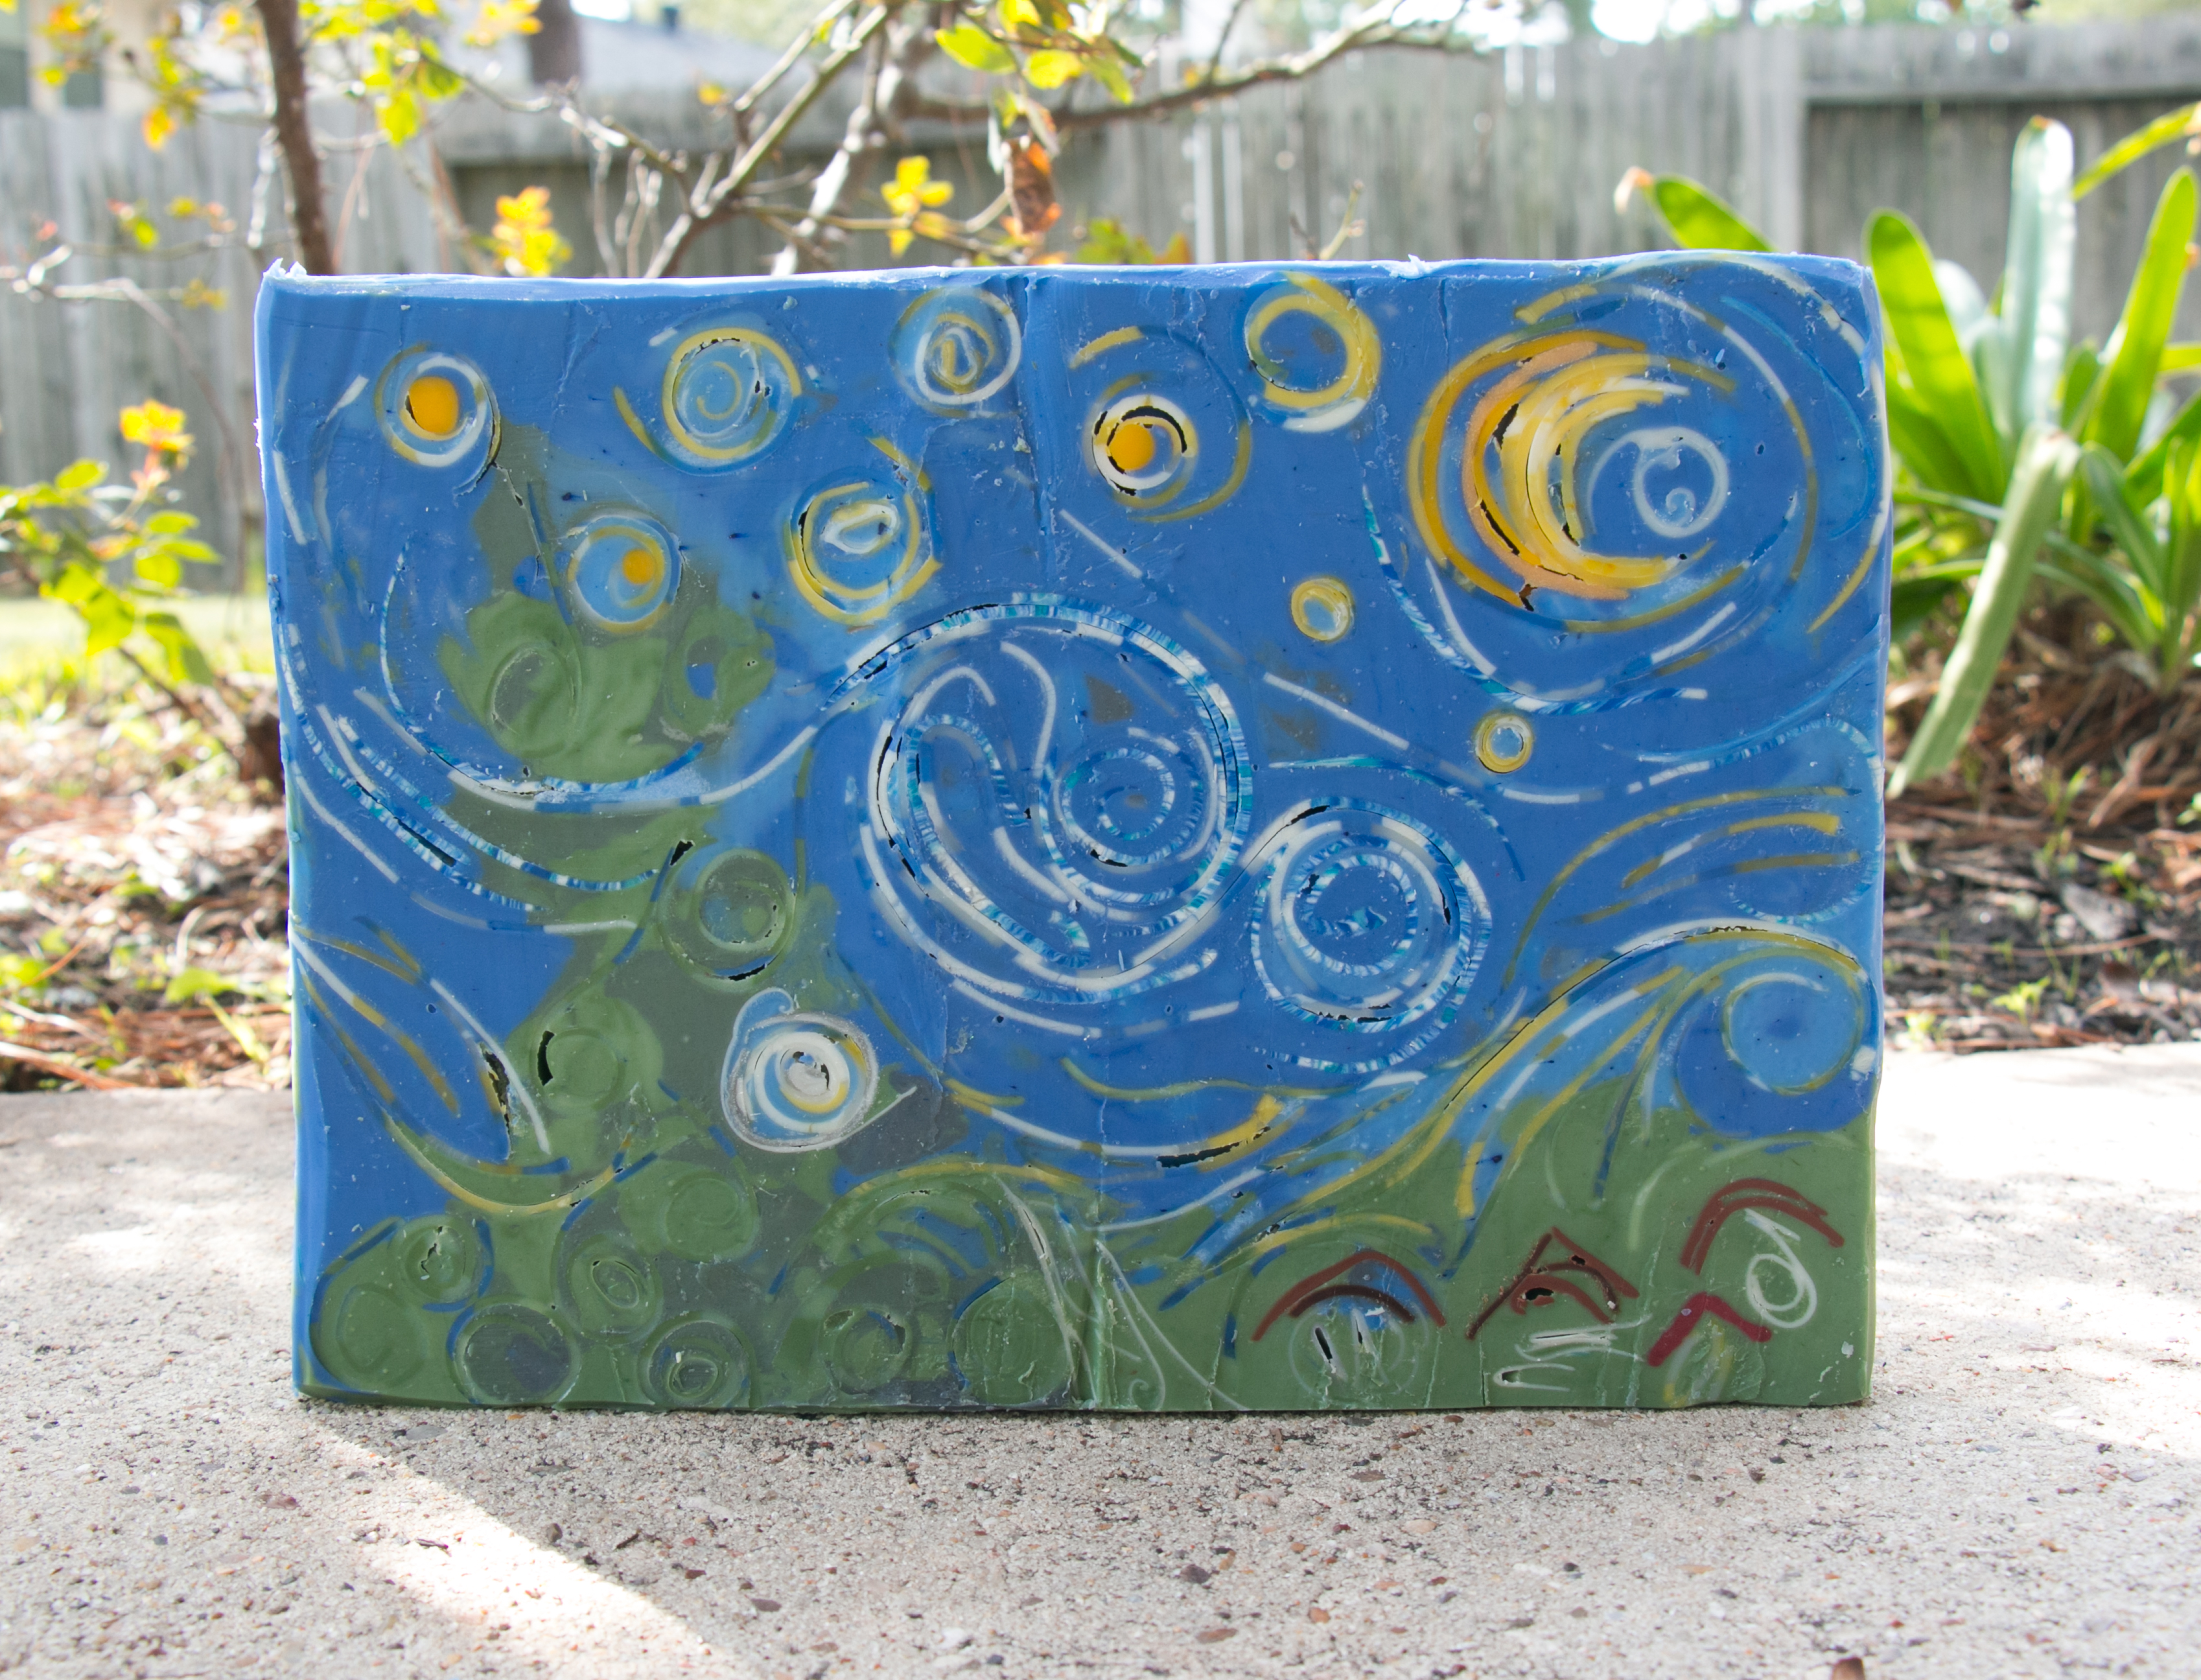 inspired in the starry night